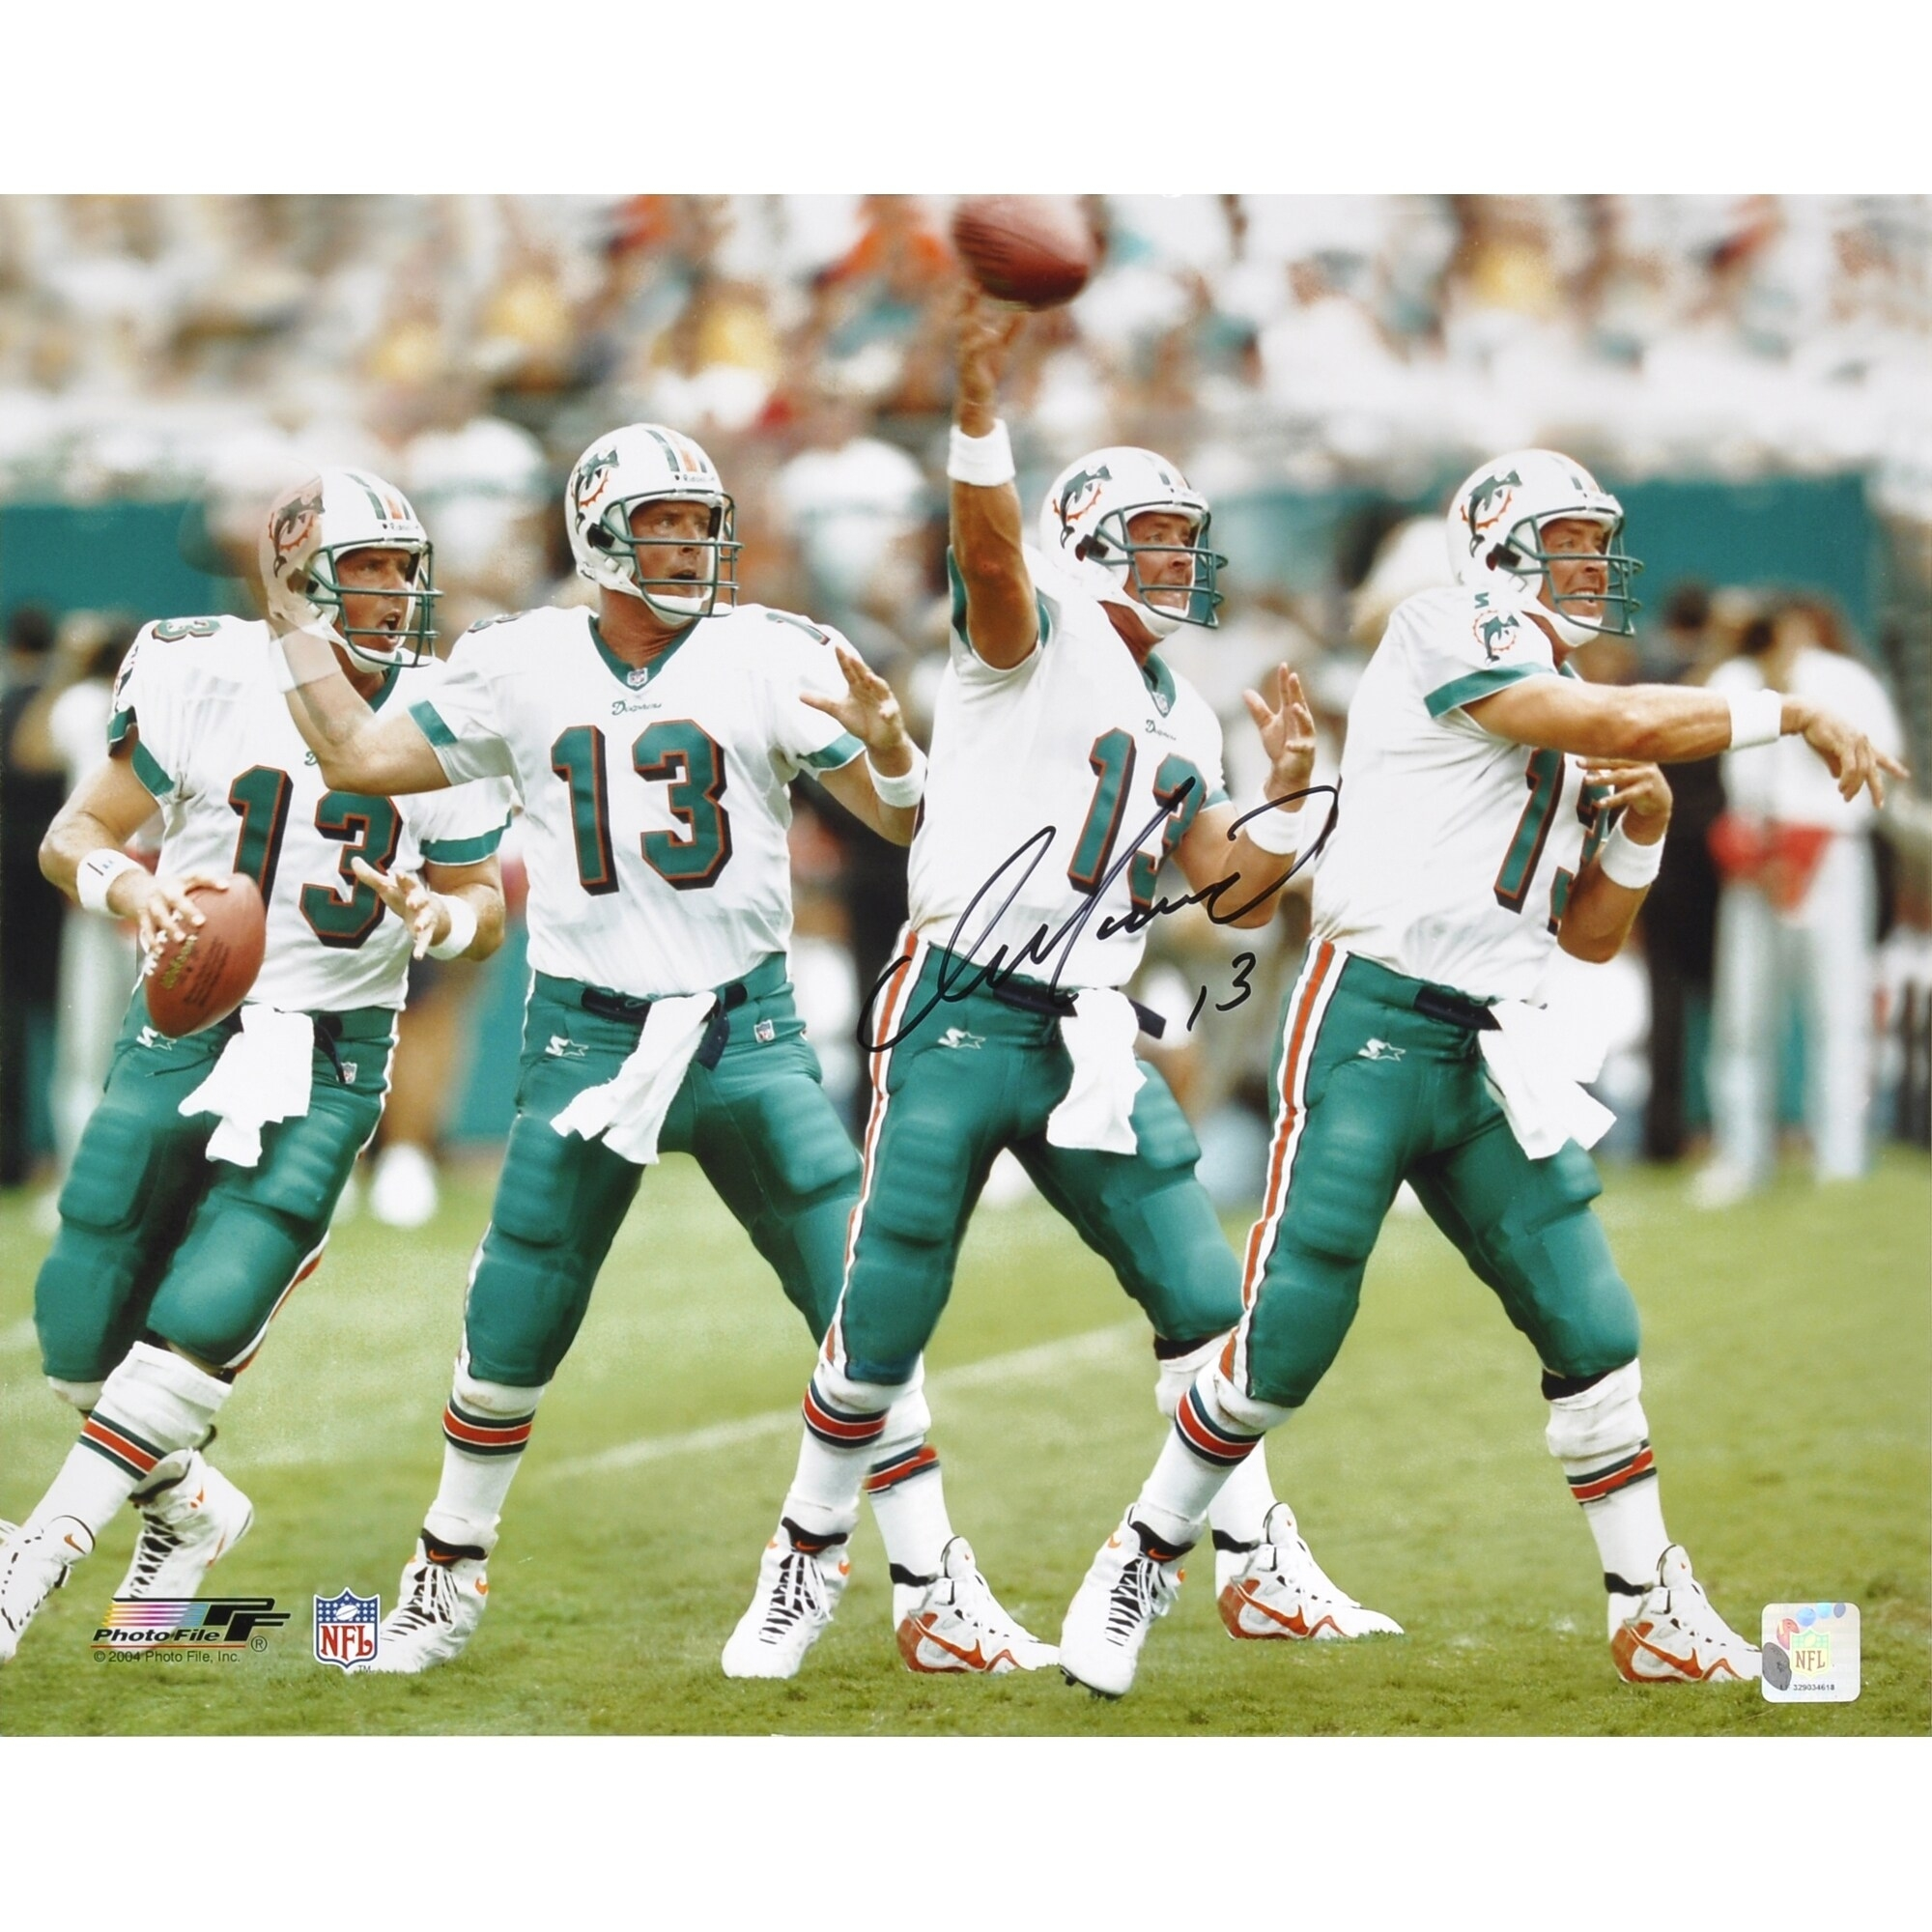 """Dan Marino Miami Dolphins Autographed 16"""" X 20"""" Exposure intended for Miami Dolphins Football Stadium Address"""